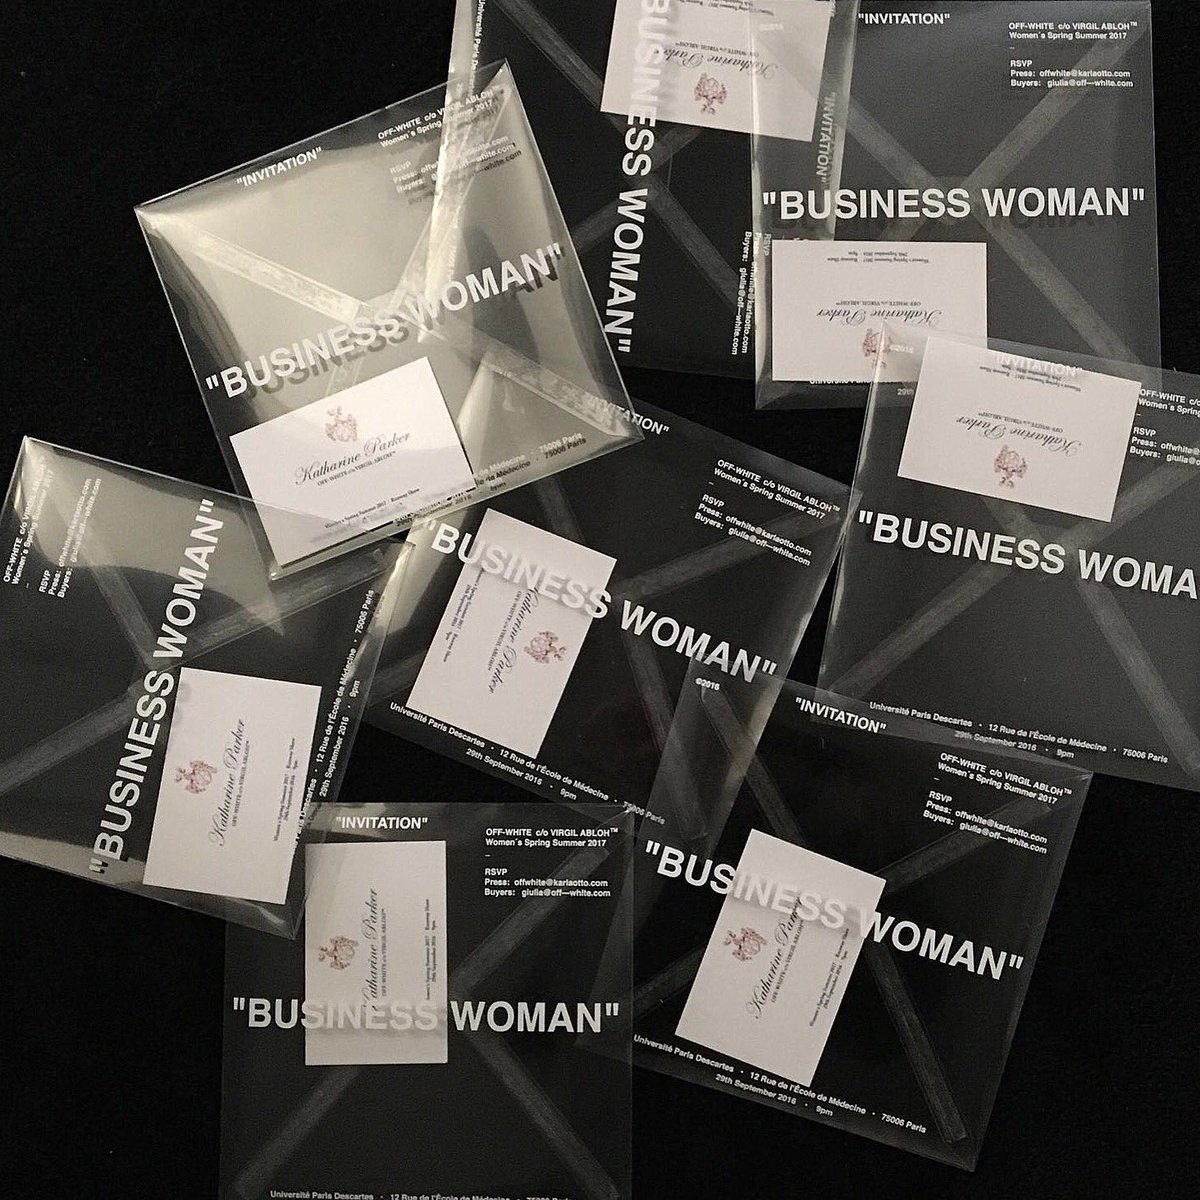 Virgil abloh on twitter katherine parker business cards the virgil abloh on twitter katherine parker business cards the invites to ss17 womens off white runway show live streaming 929 9pm paris local time magicingreecefo Choice Image